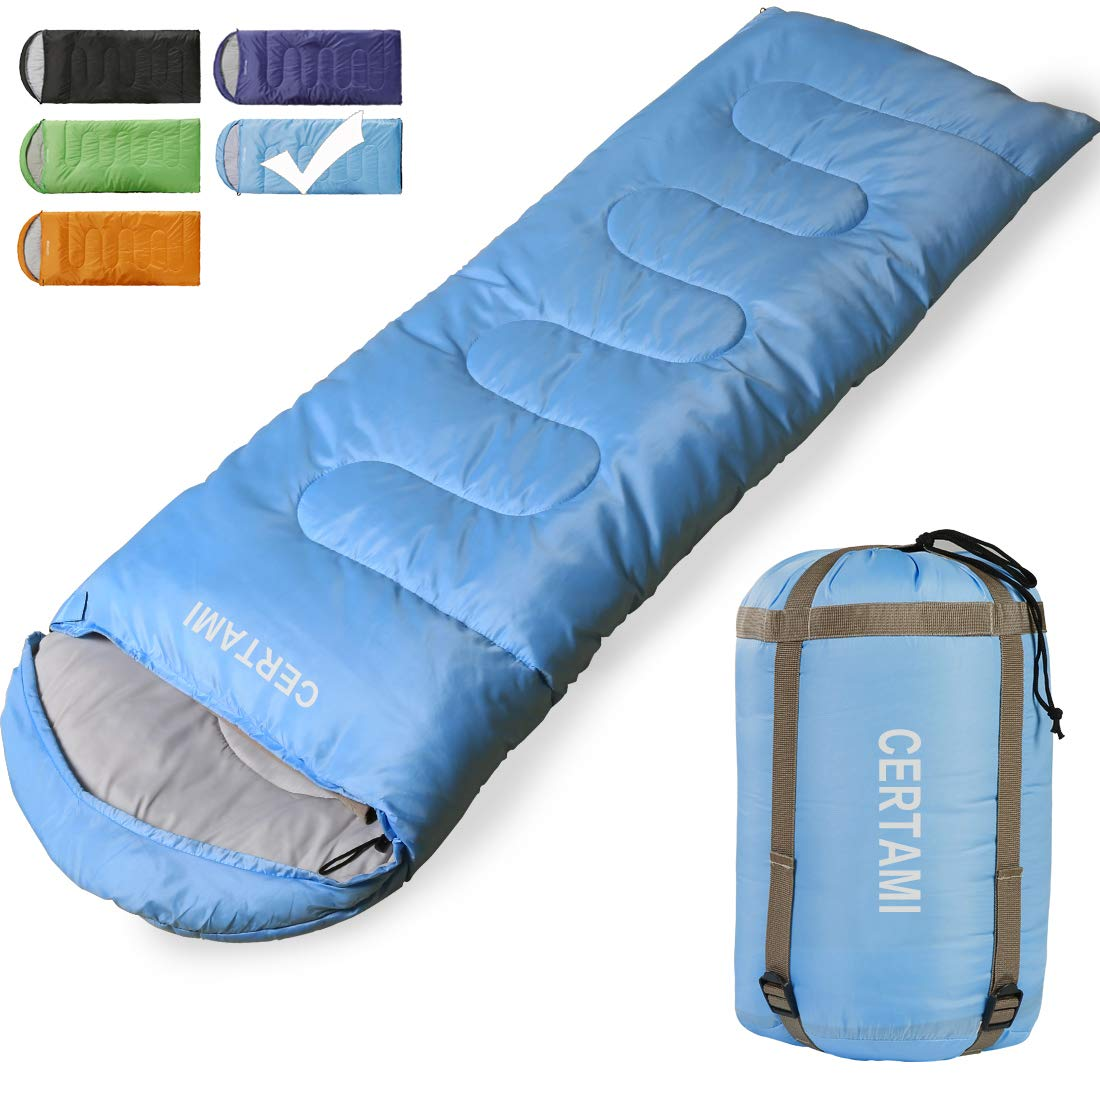 CER TAMI Sleeping Bag for Adults, Girls & Boys, Lightweight Waterproof Compact, Great for 4 Season Warm & Cold Weather, Perfect for Outdoor Backpacking, Camping, Hiking. (Sky Blue/Left Zip) by CER TAMI